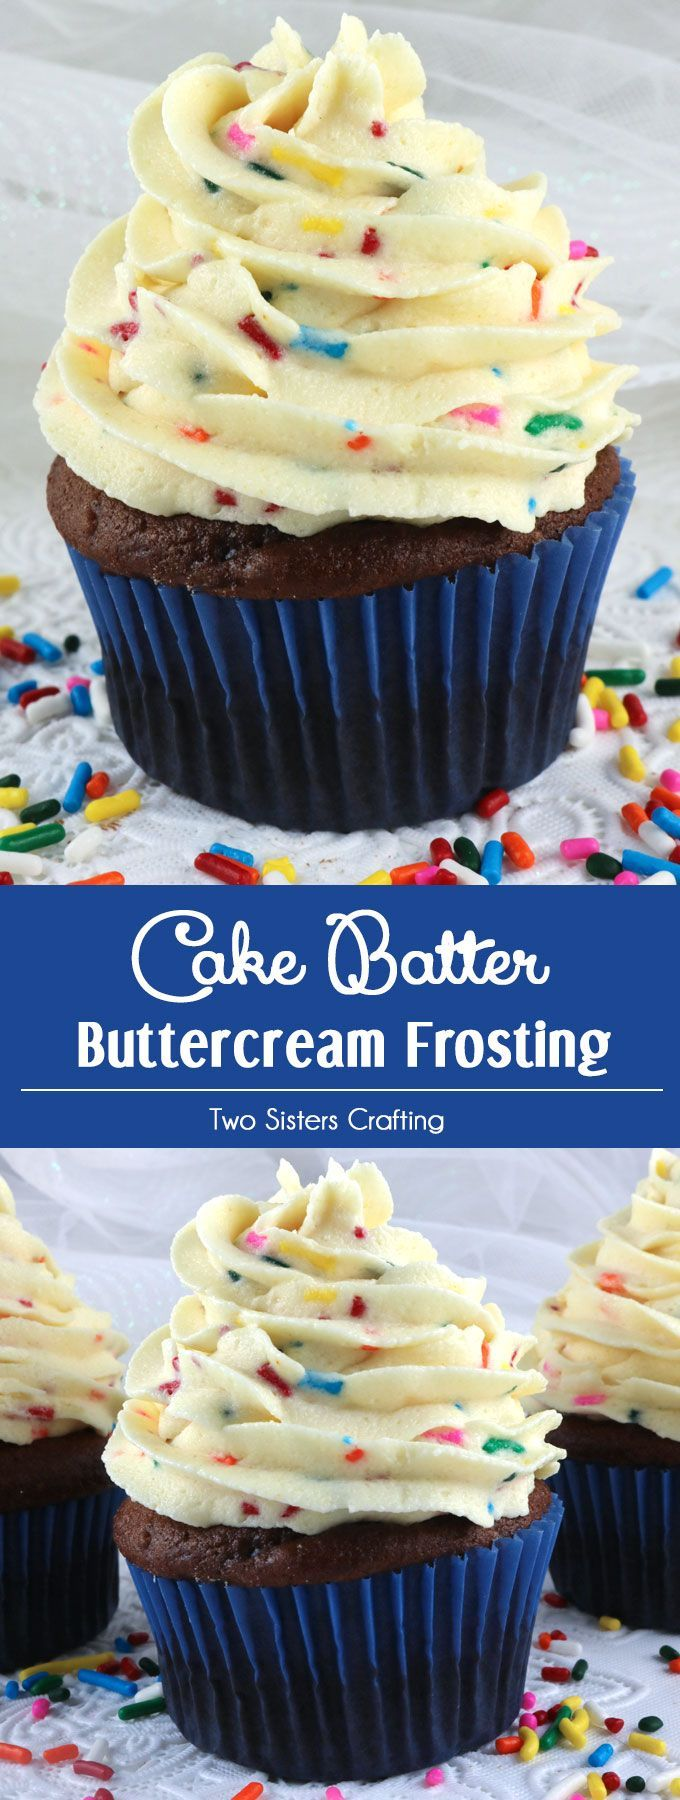 Cake Batter Buttercream Frosting - our delicious buttercream frosting flavored with cake mix and sprinkles. Sweet, creamy and colorful, this yummy homemade butter cream frosting will take your Birthday Cakes and Birthday Cupcakes to the next level, we promise! Pin this tasty Cake Batter Icing for later and follow us for more great Frosting Recipes! #yummycakes